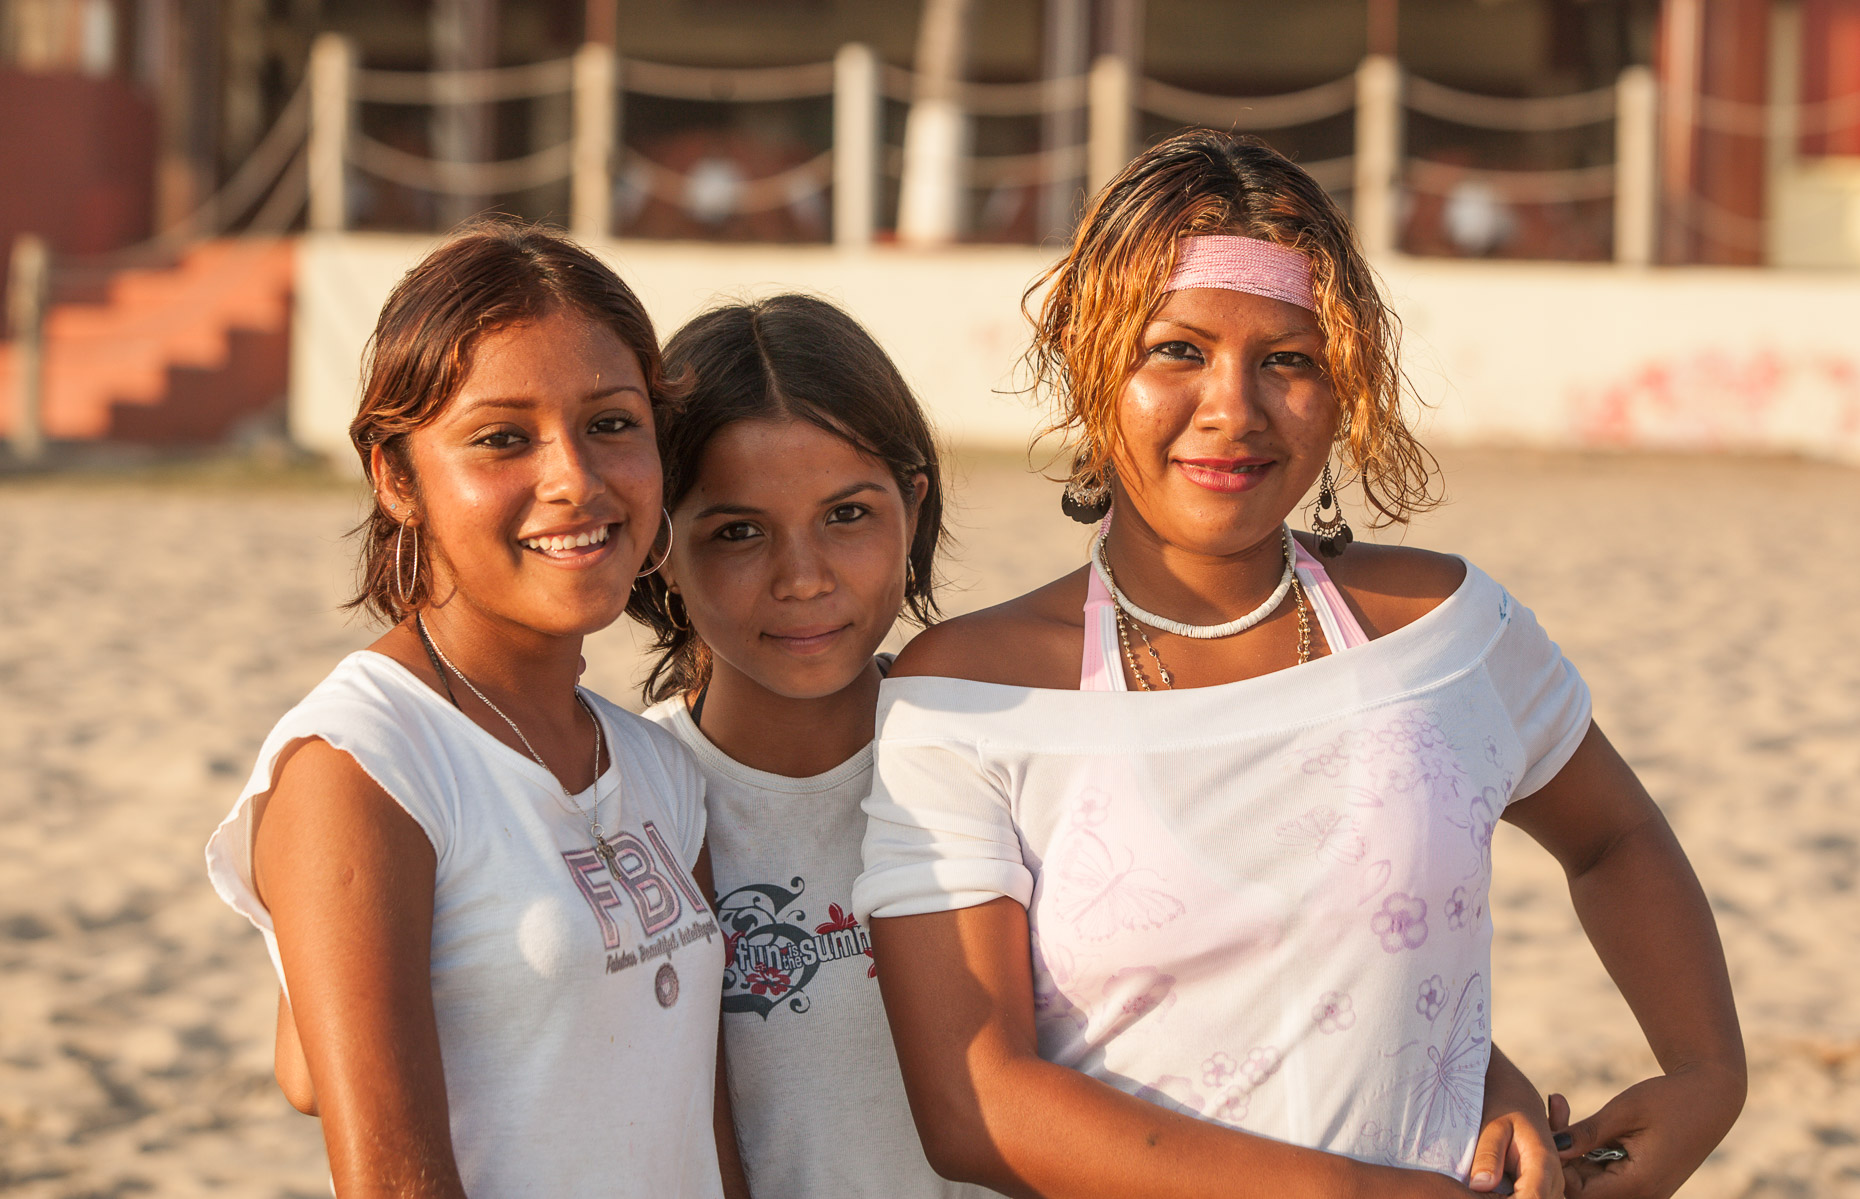 Portrait of three girls on beach of Ixtapa Mexico by David Zaitz